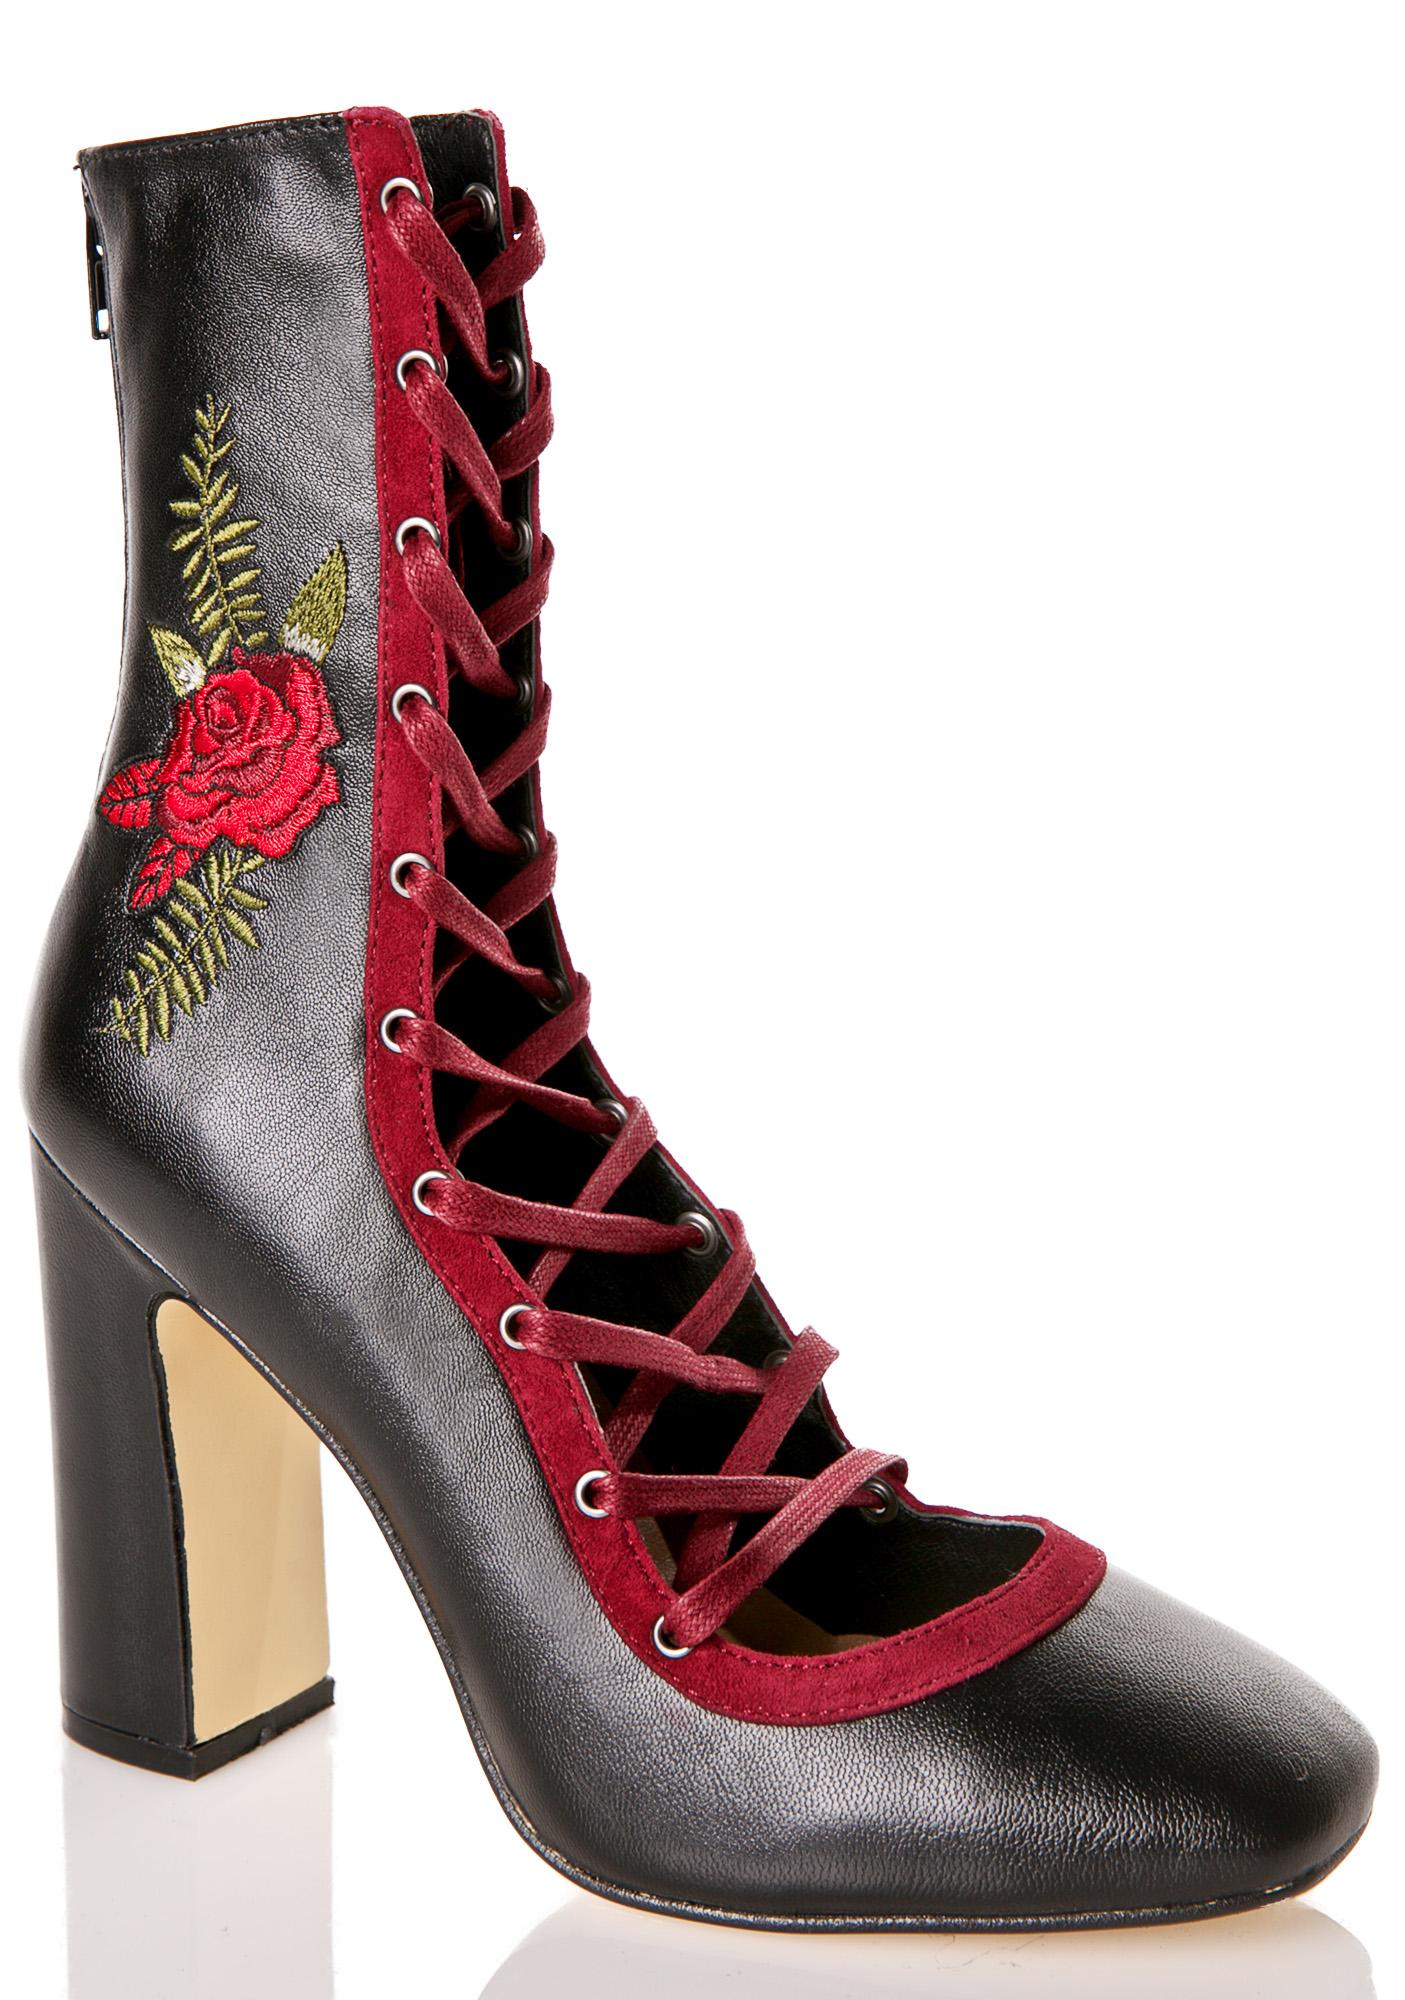 Chinese Laundry Black Rose Leather Heels